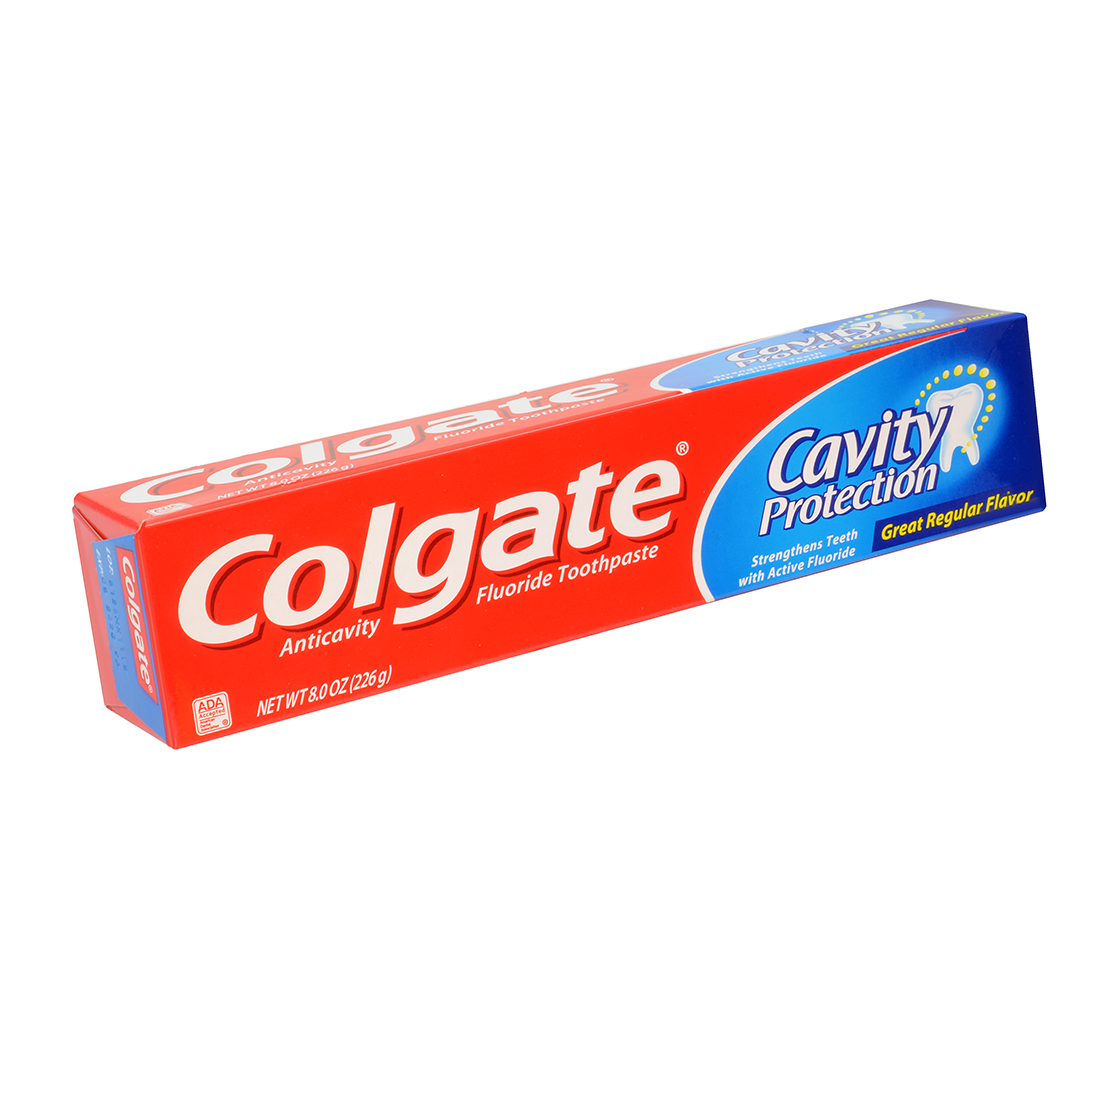 View COLGATE TOOTHPASTE 8.2 OZ CAVITY PROTECTION REGULAR FLAVOR